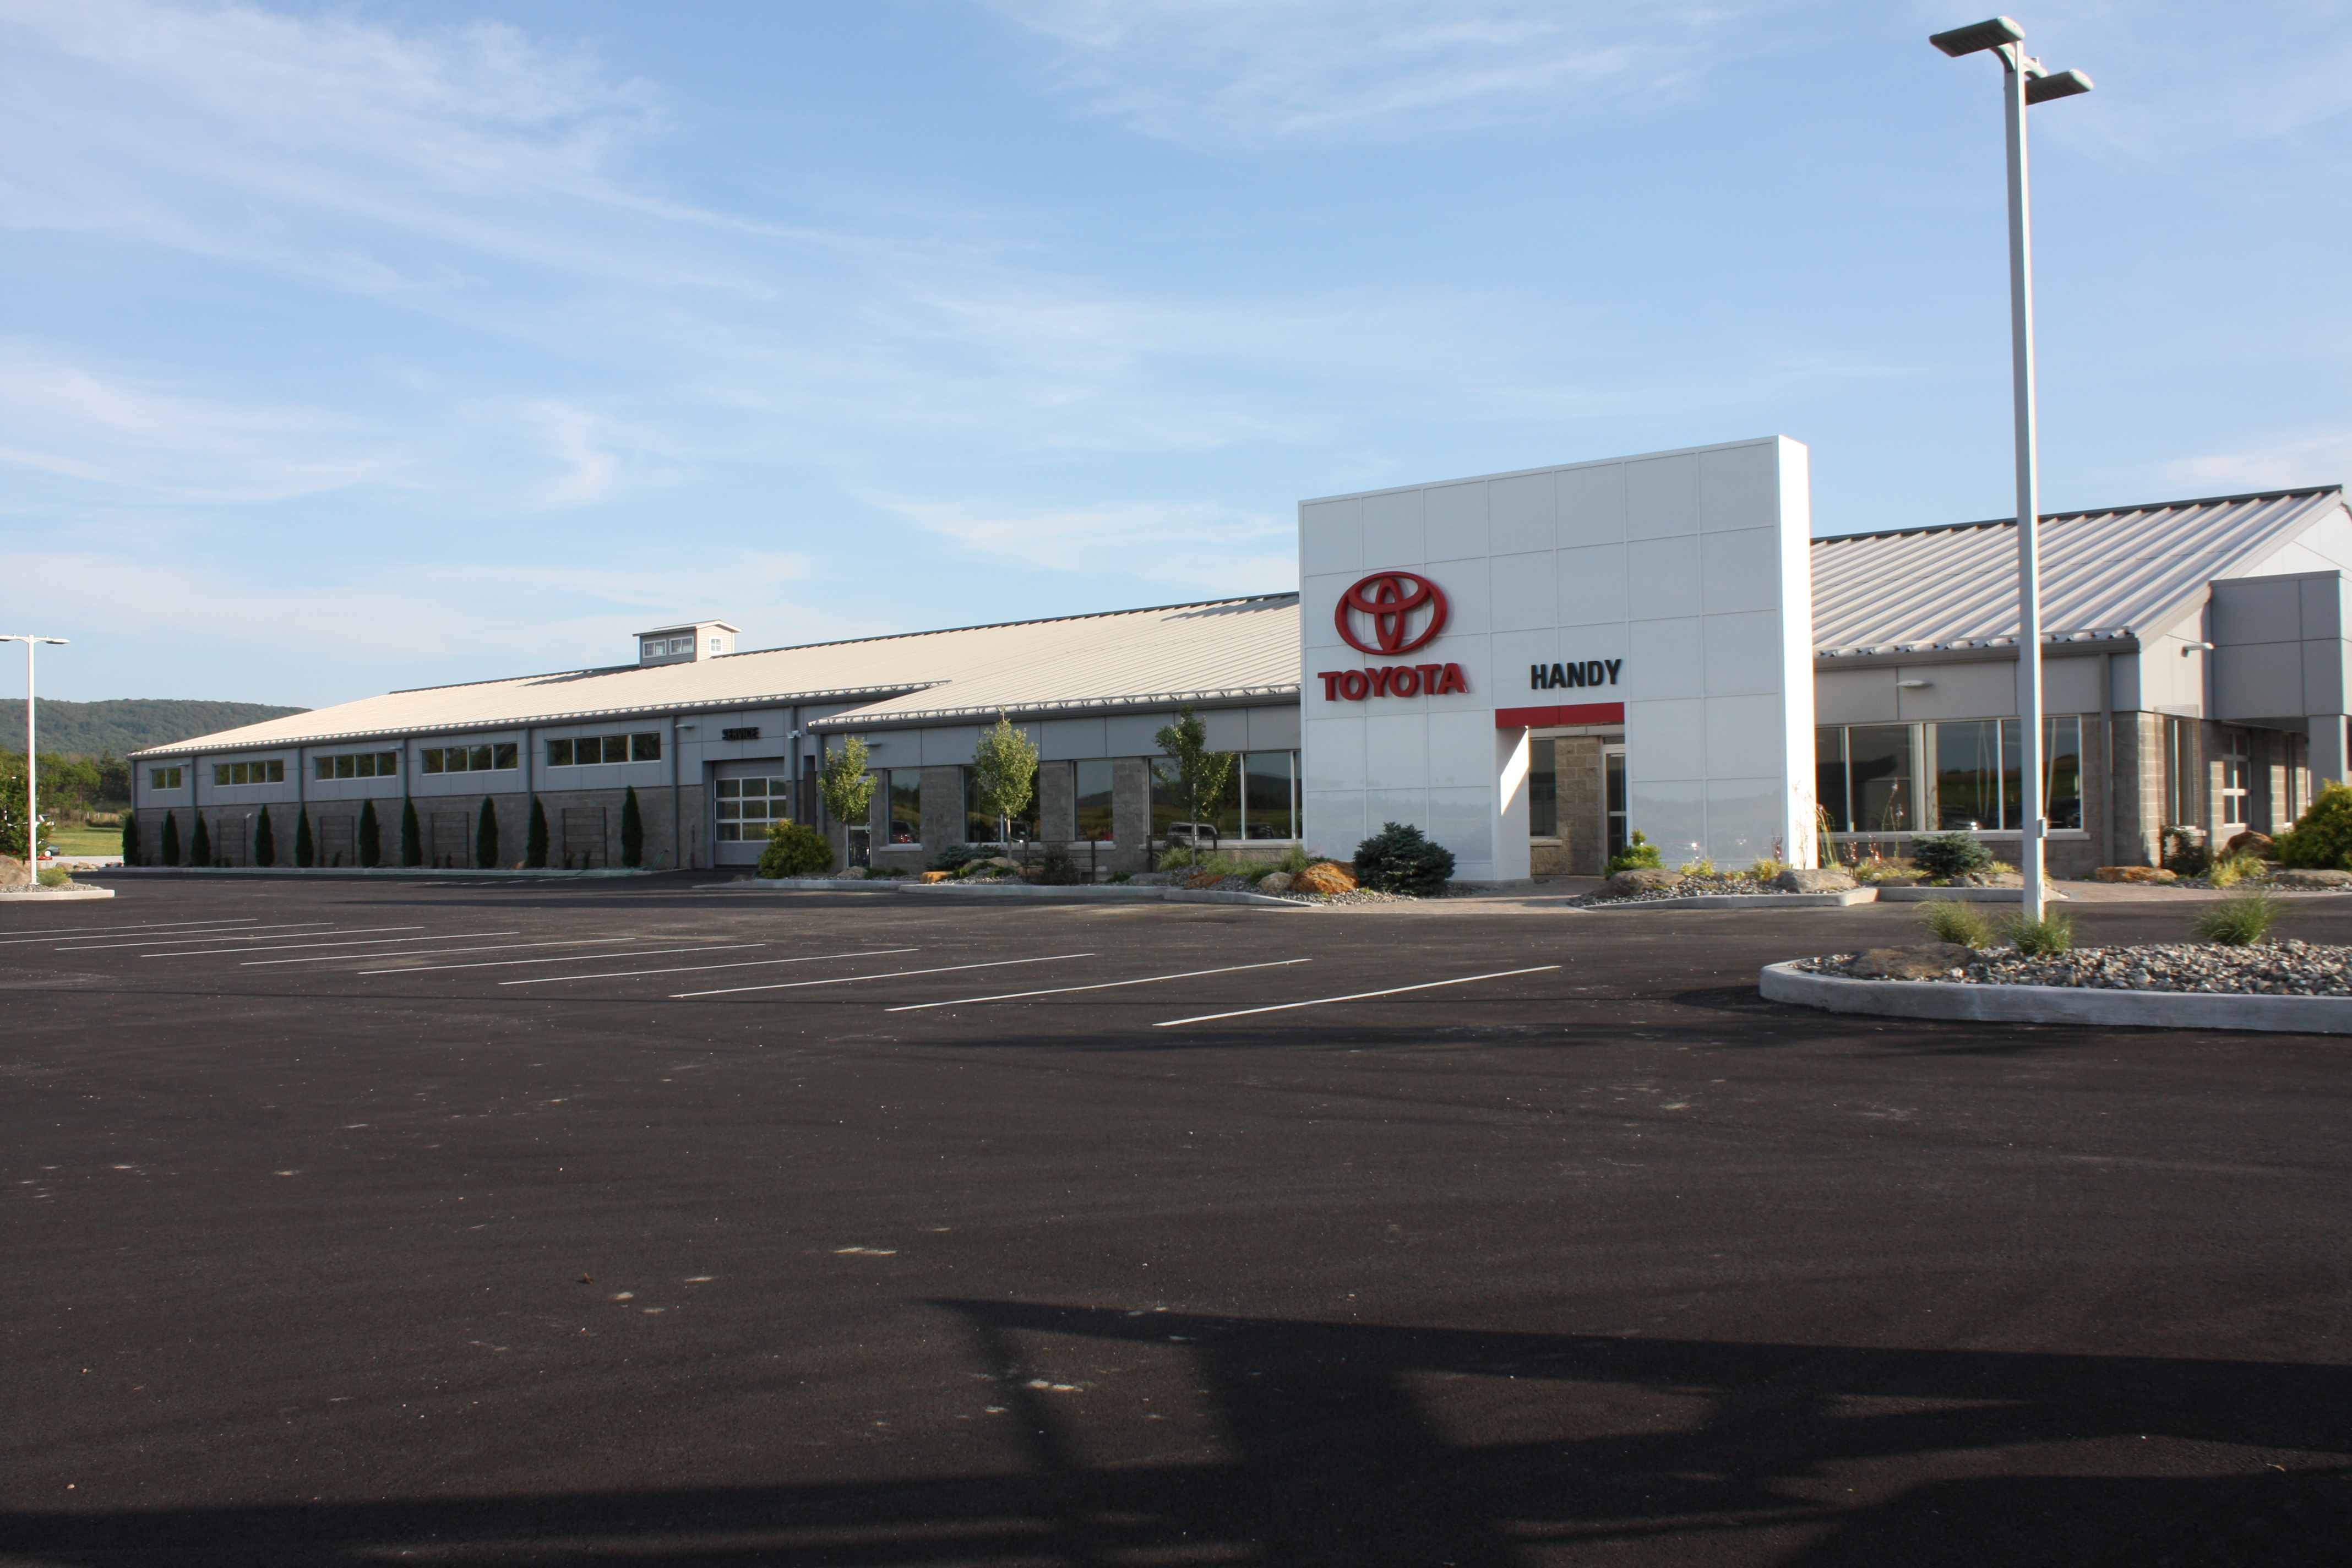 handy toyota new toyota dealership in st albans vt 05478 autos post. Black Bedroom Furniture Sets. Home Design Ideas